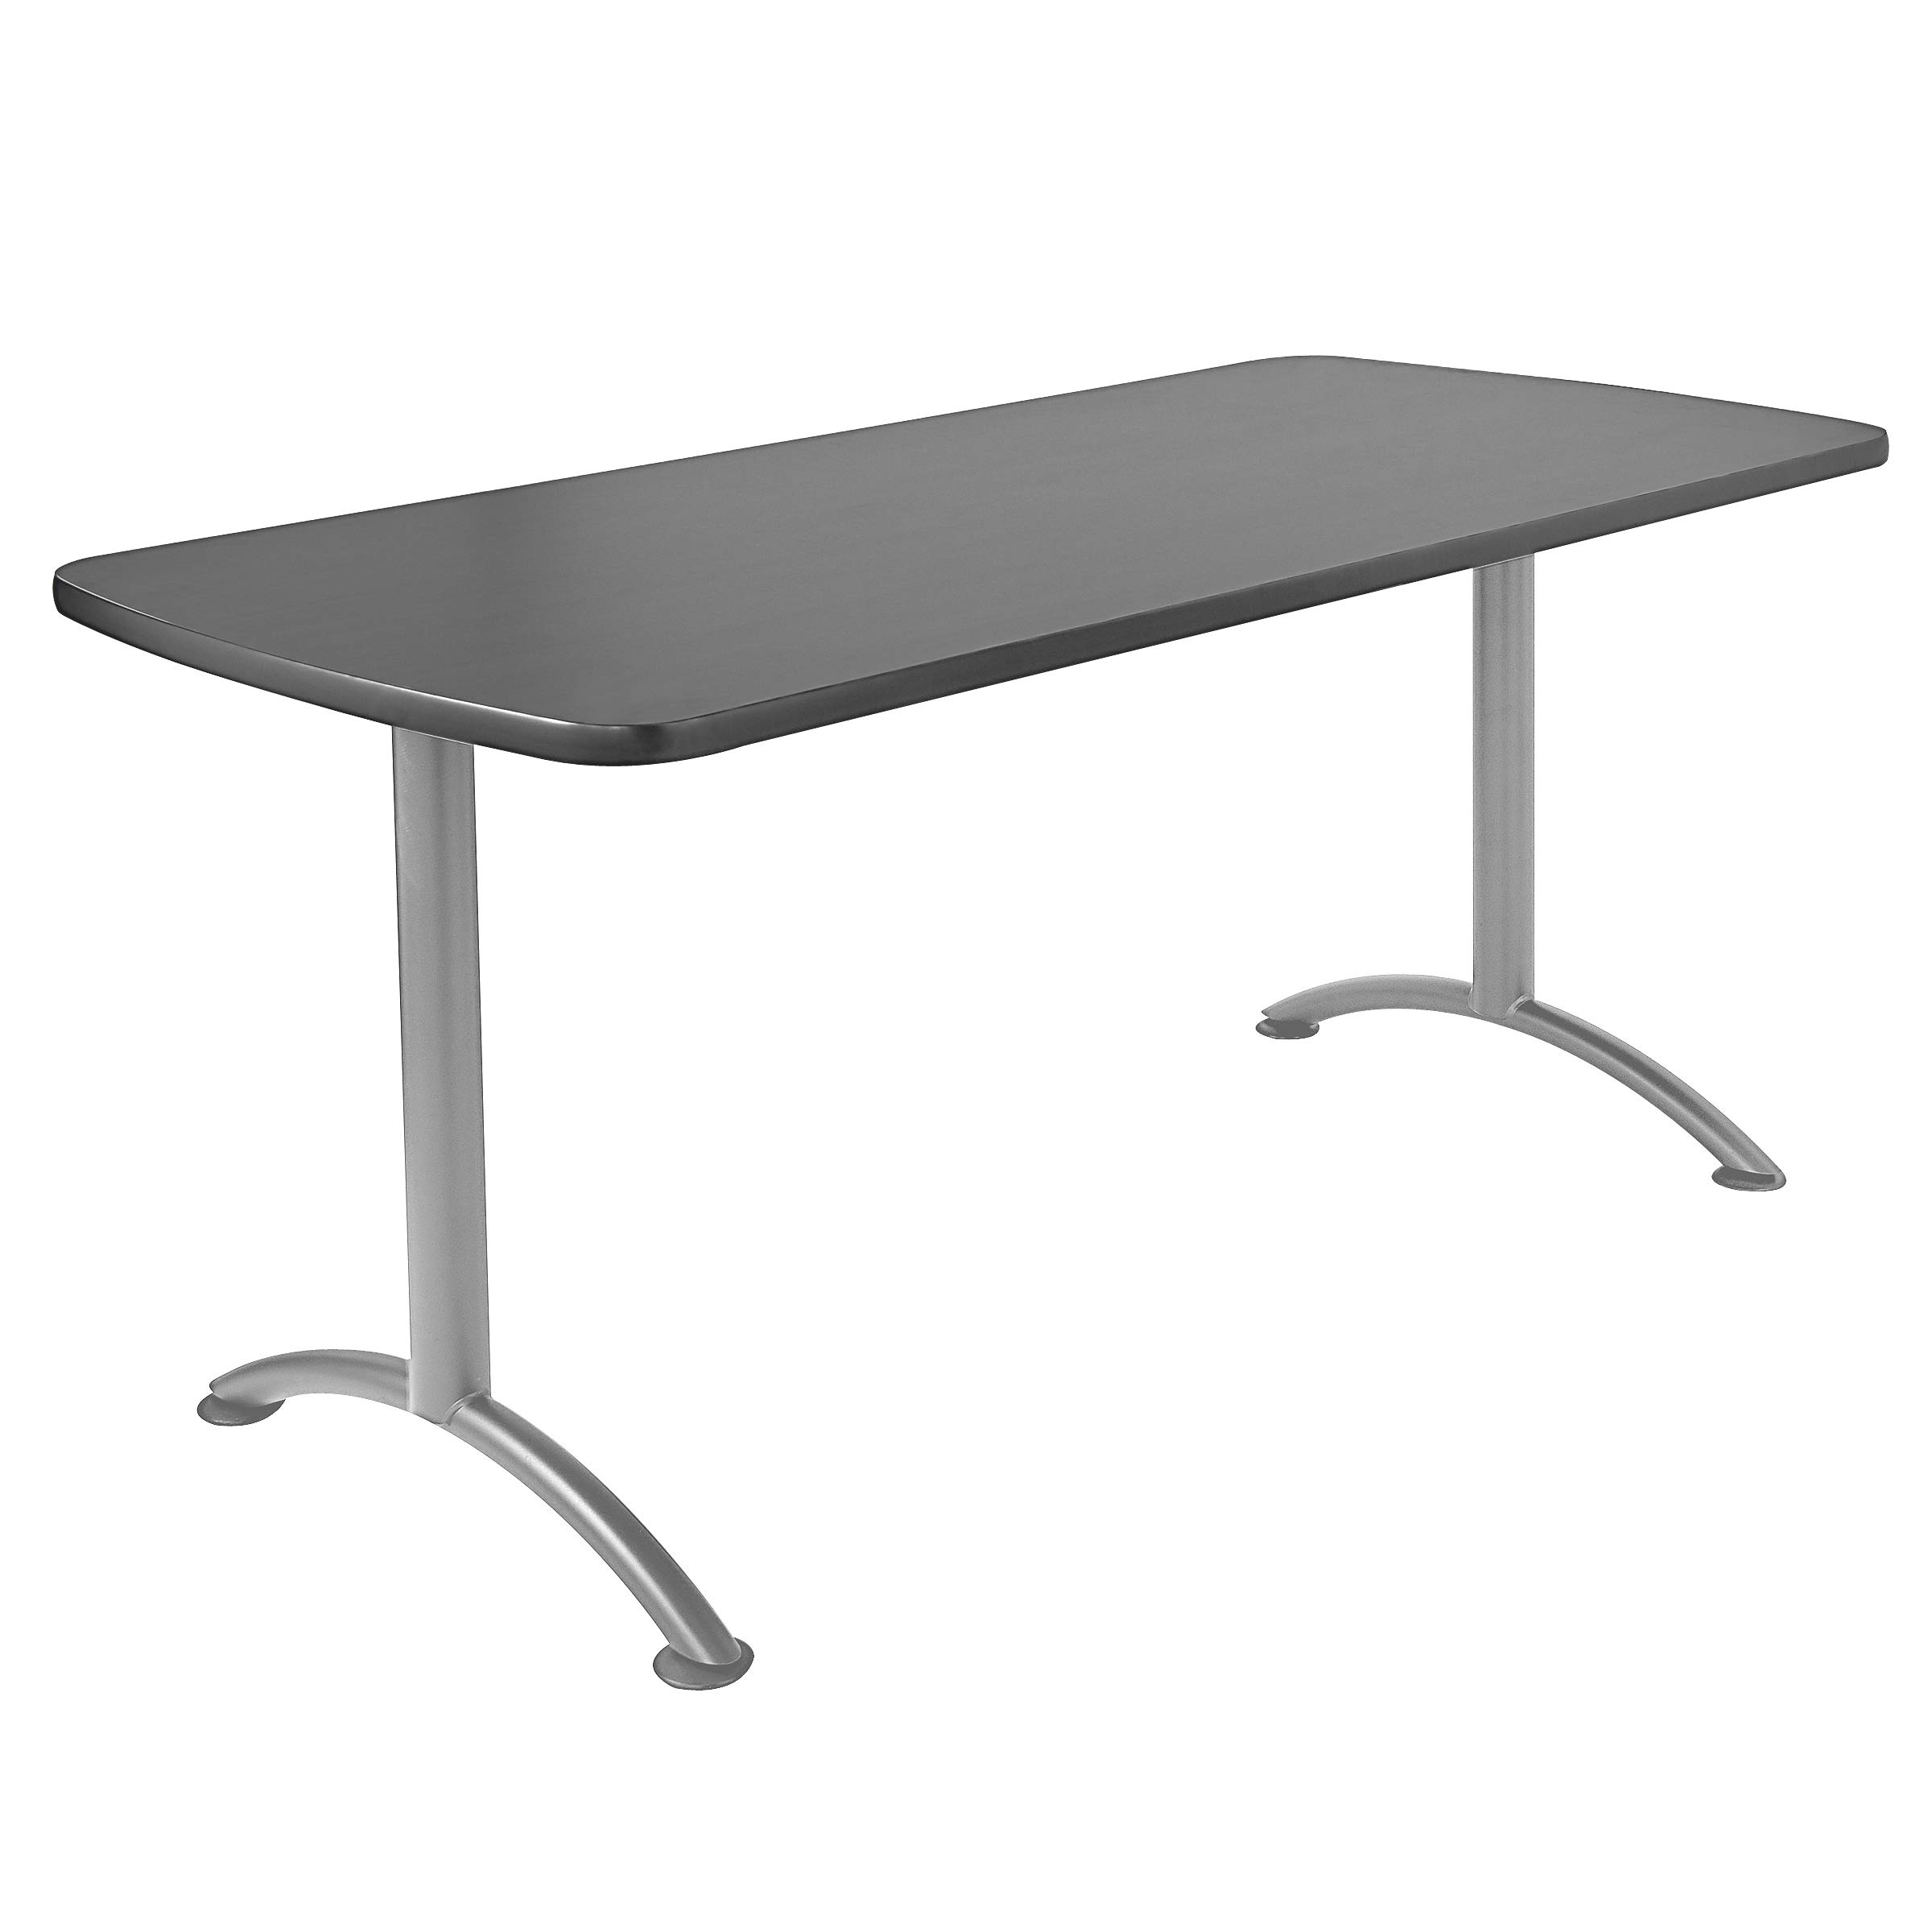 Iceberg ICE69217 ARC 5-foot Rectangular Conference Table, 30'' x 60'', Graphite/Silver Leg by Iceberg